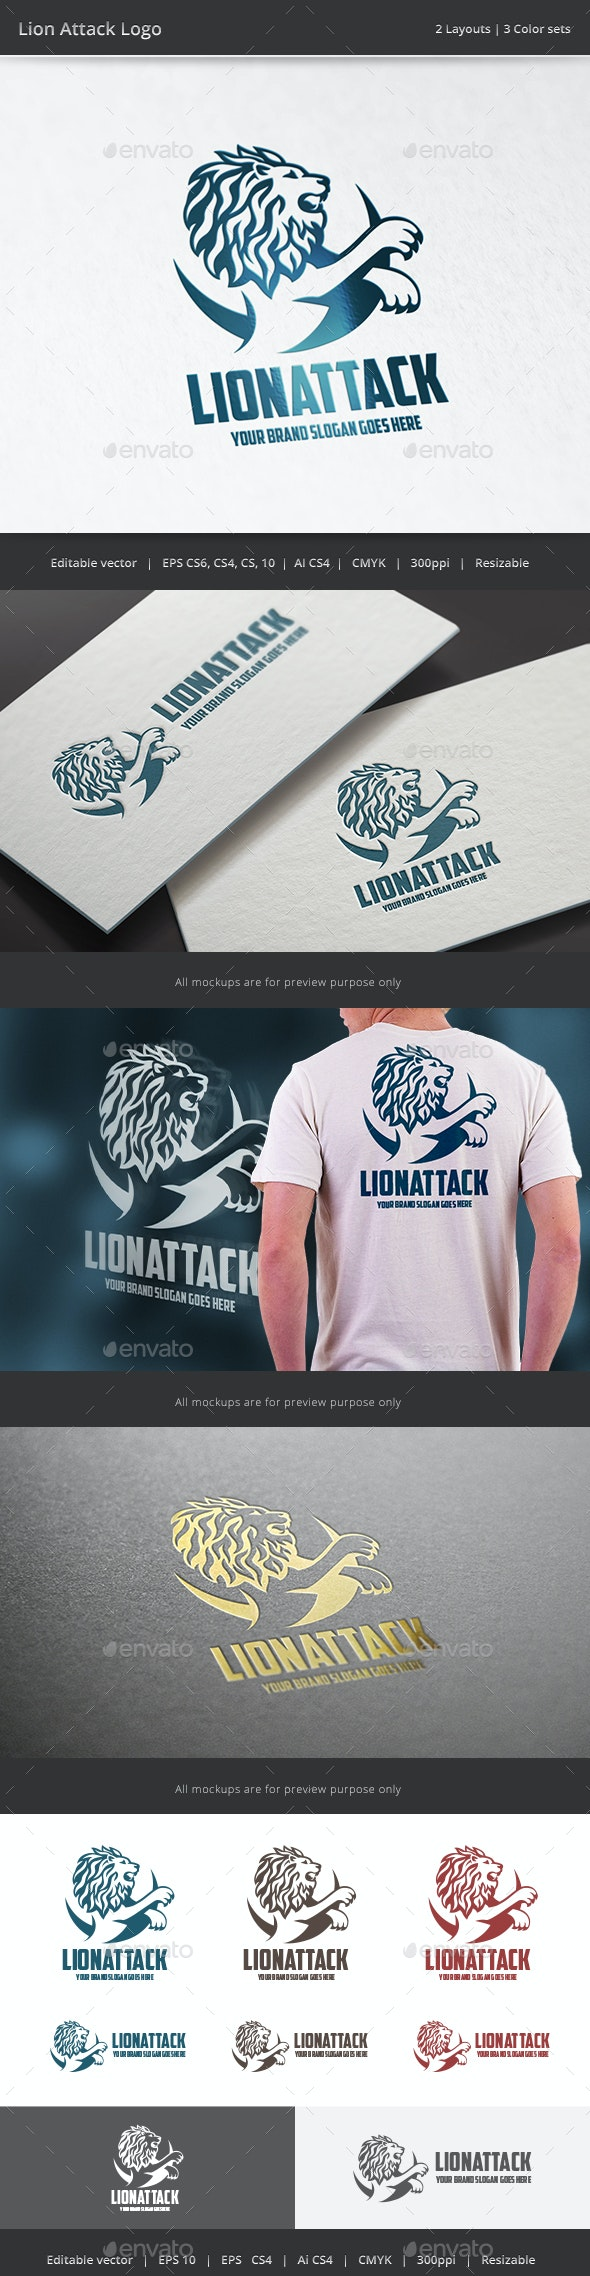 Lion Attack Logo - Animals Logo Templates